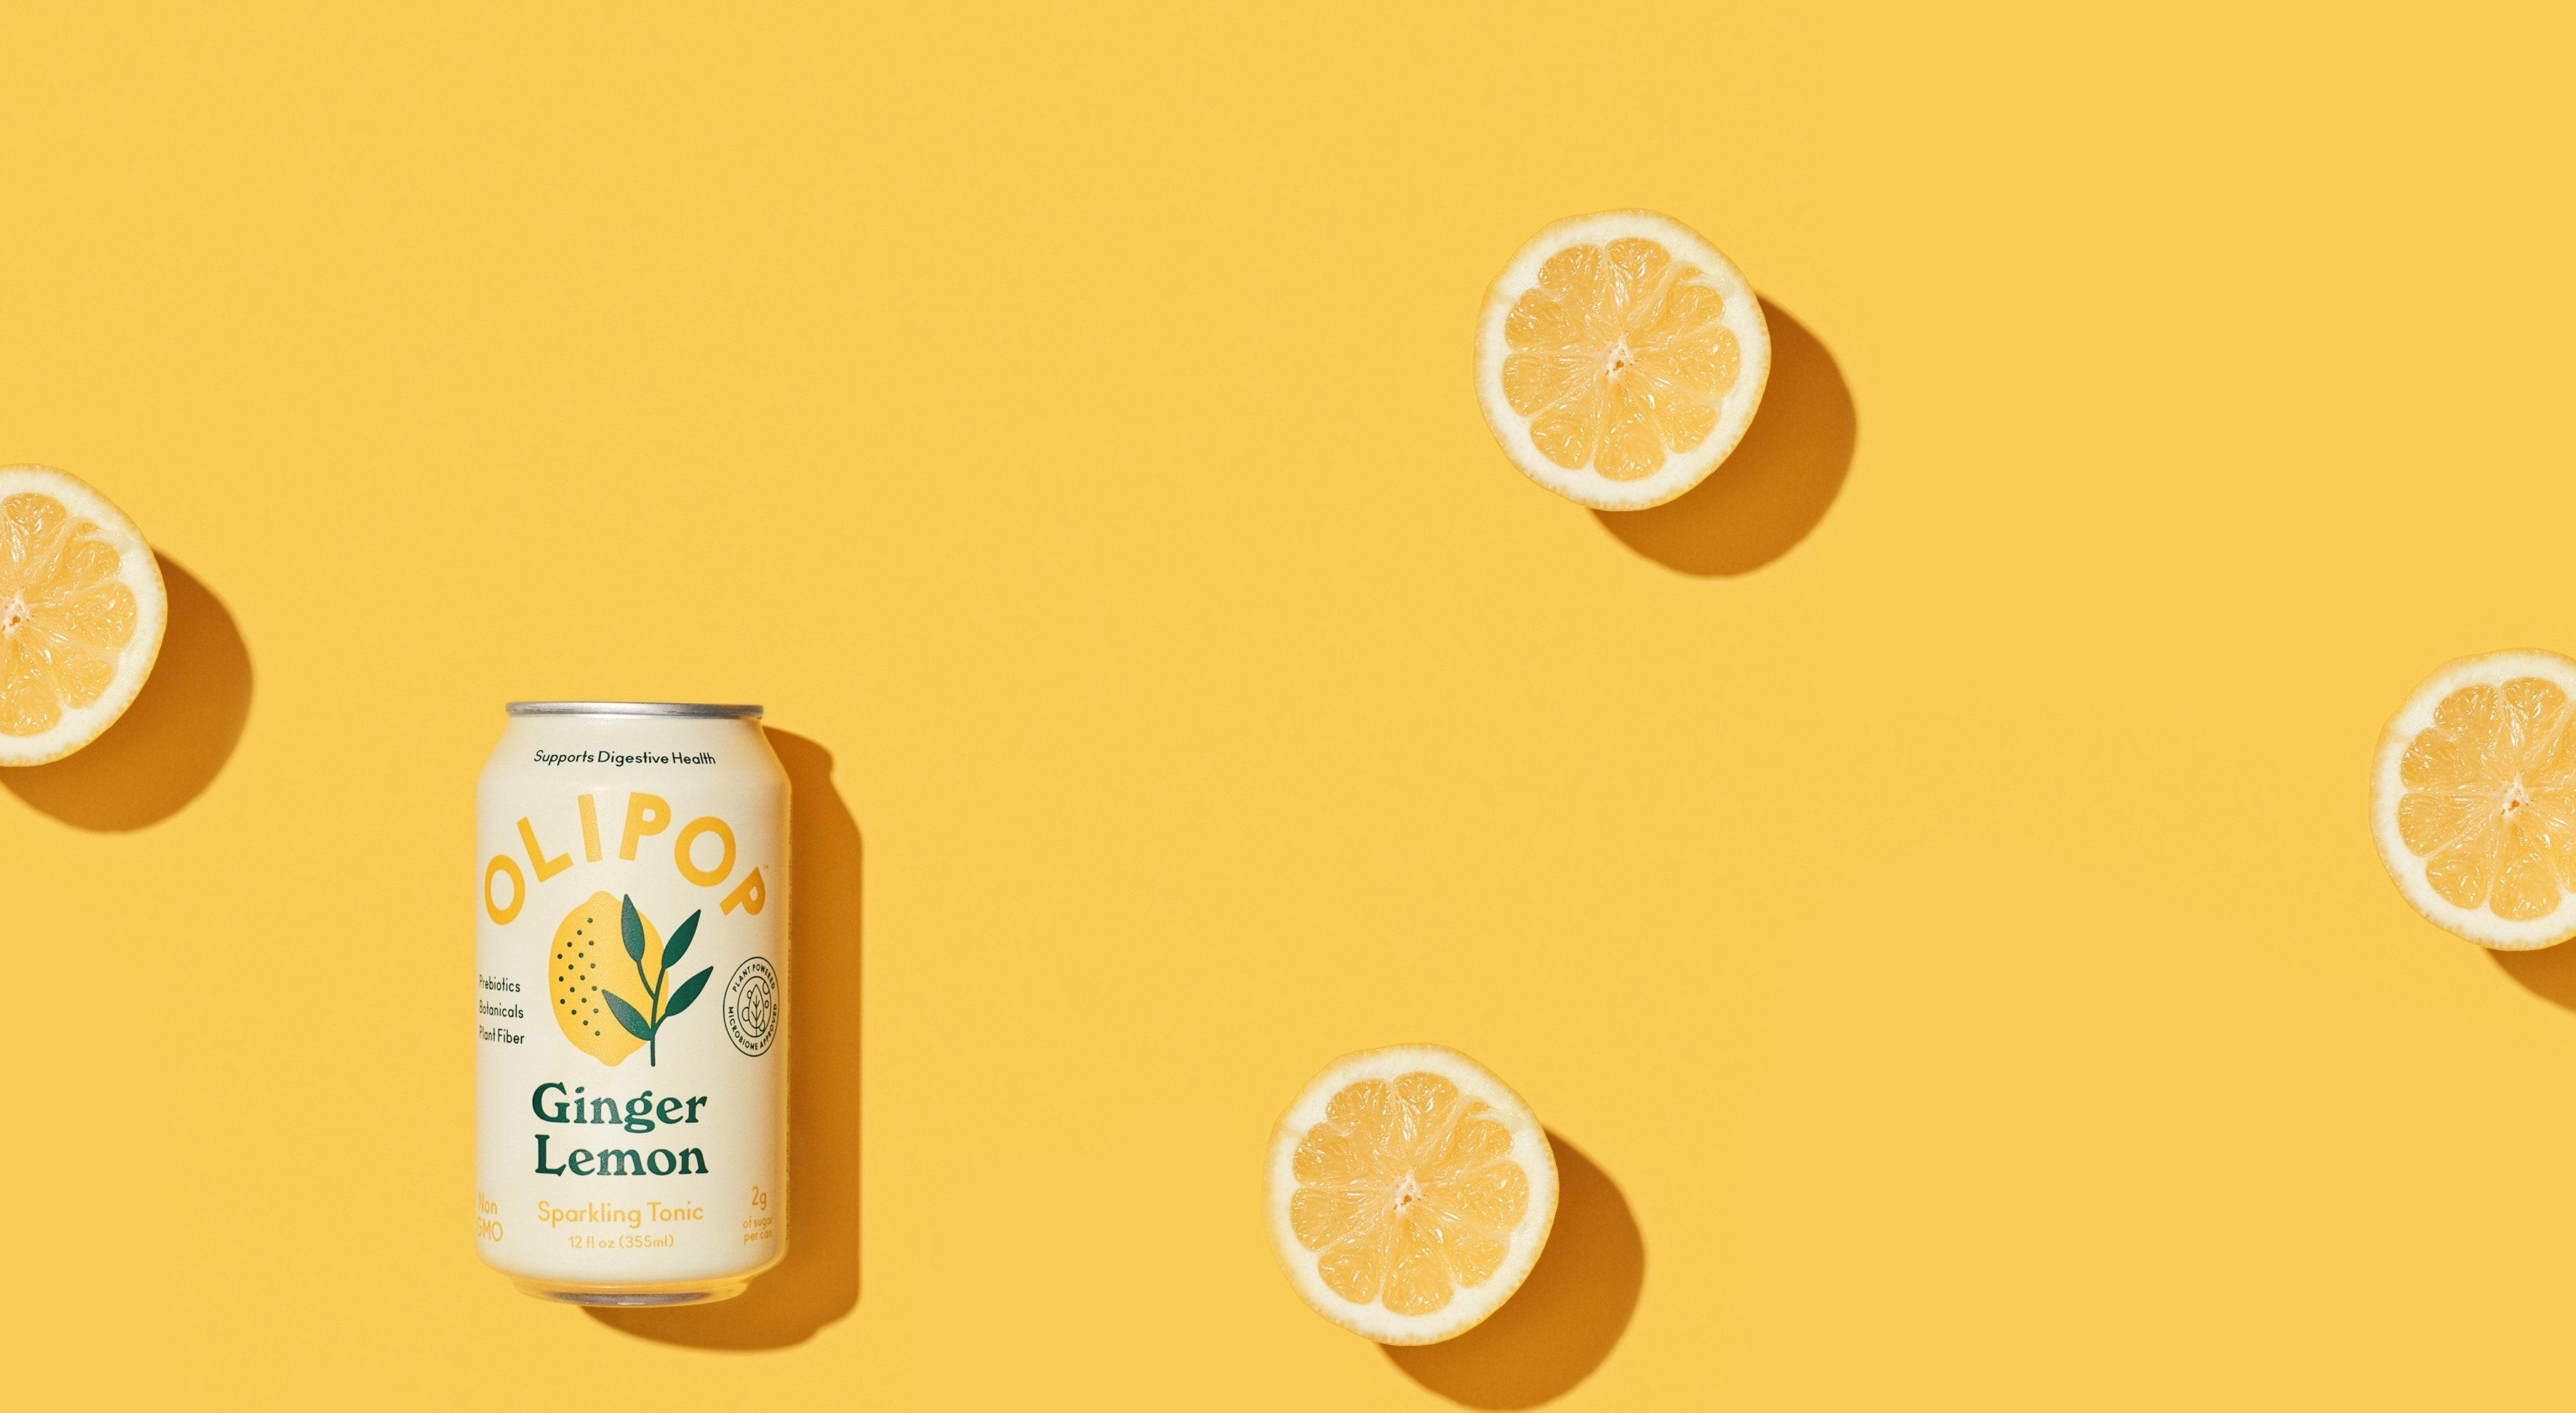 Ginger Lemon Olipop can with surrounded by sliced lemons.